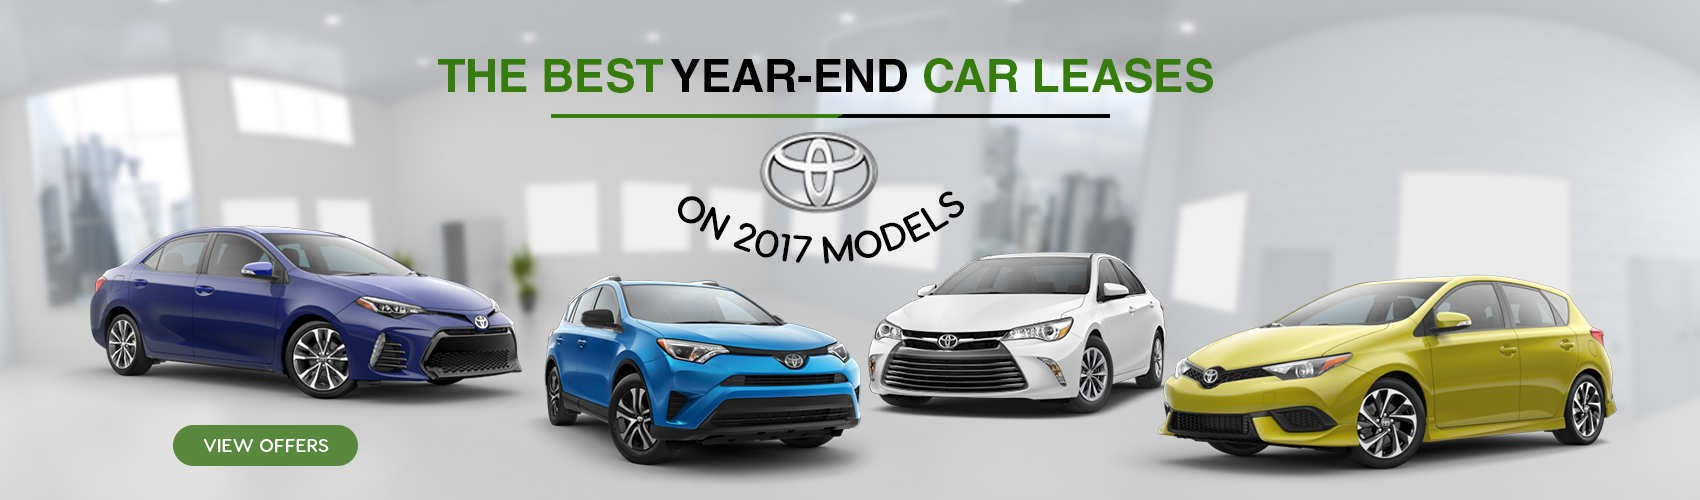 the best year end car leases at beaverton toyota